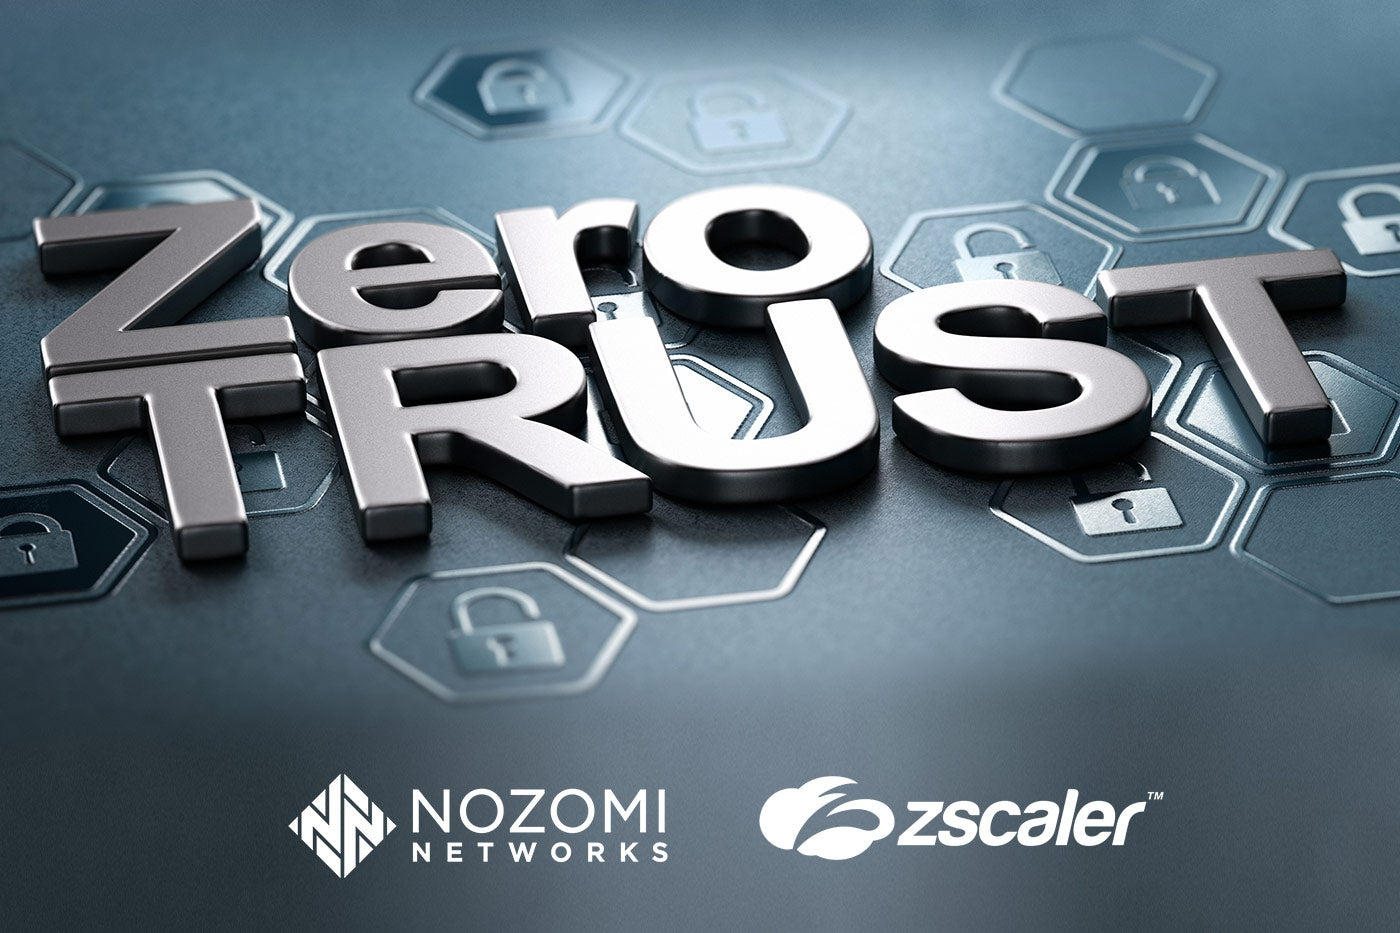 Traditional VPN-based solutions can introduce significant security risks. Nozomi Networks and Zscaler deliver a zero trust remote access solution that eliminates the attack surface.